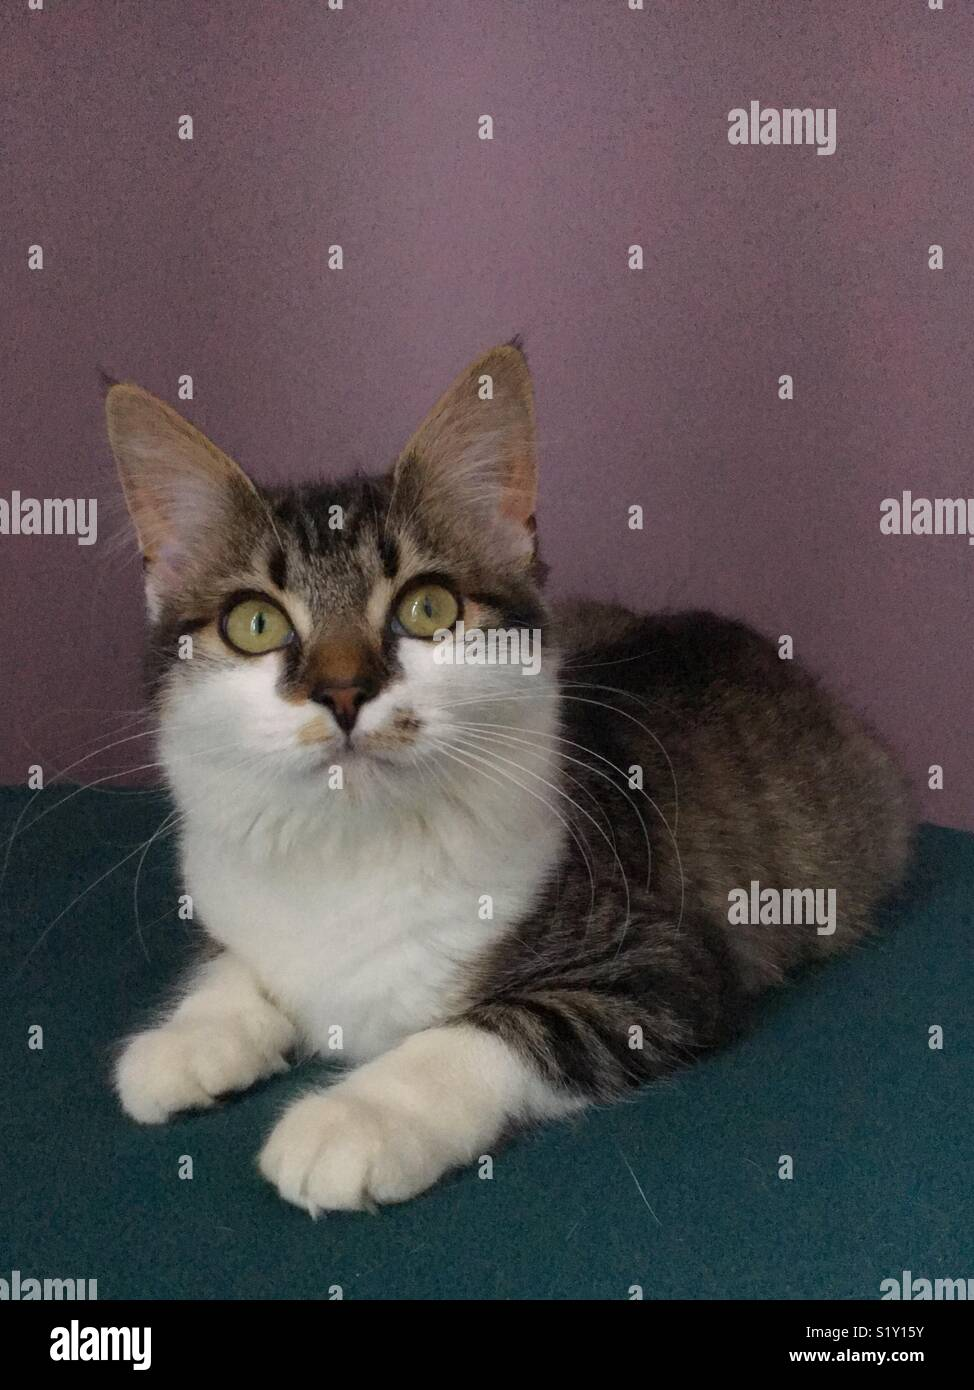 Cat sat on a green blanket against a purple wall - Stock Image